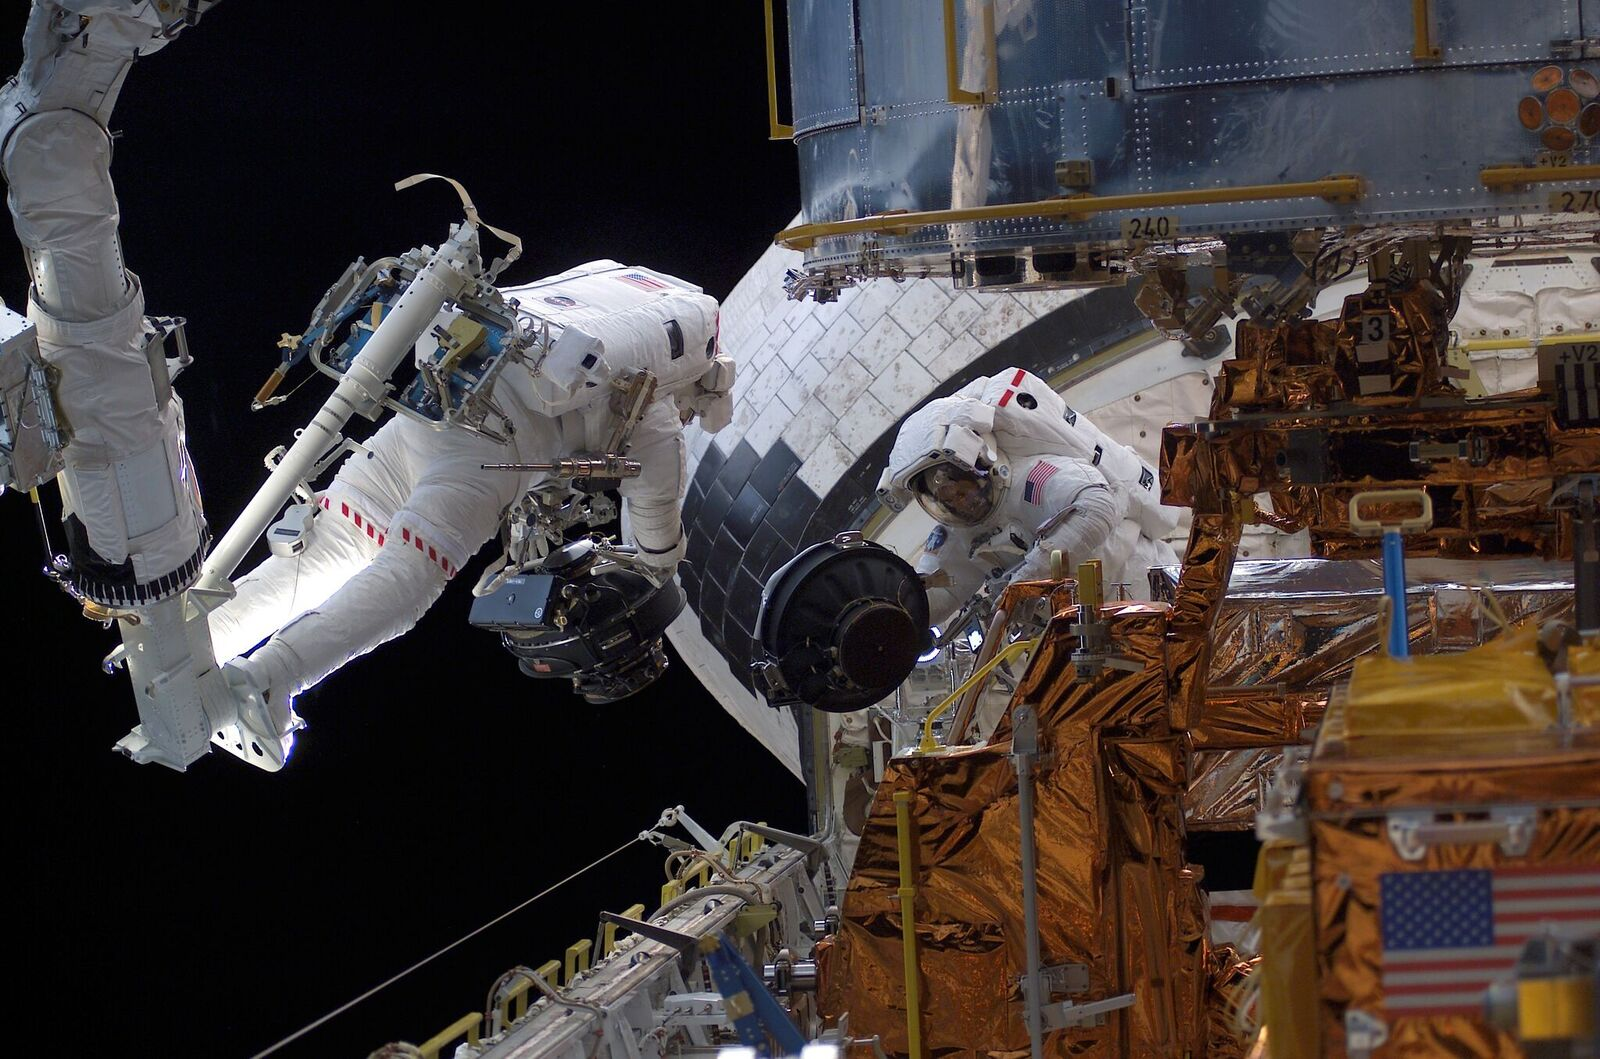 'Spaceman' Speaks! Astronaut Mike Massimino Takes Questions Live Tuesday